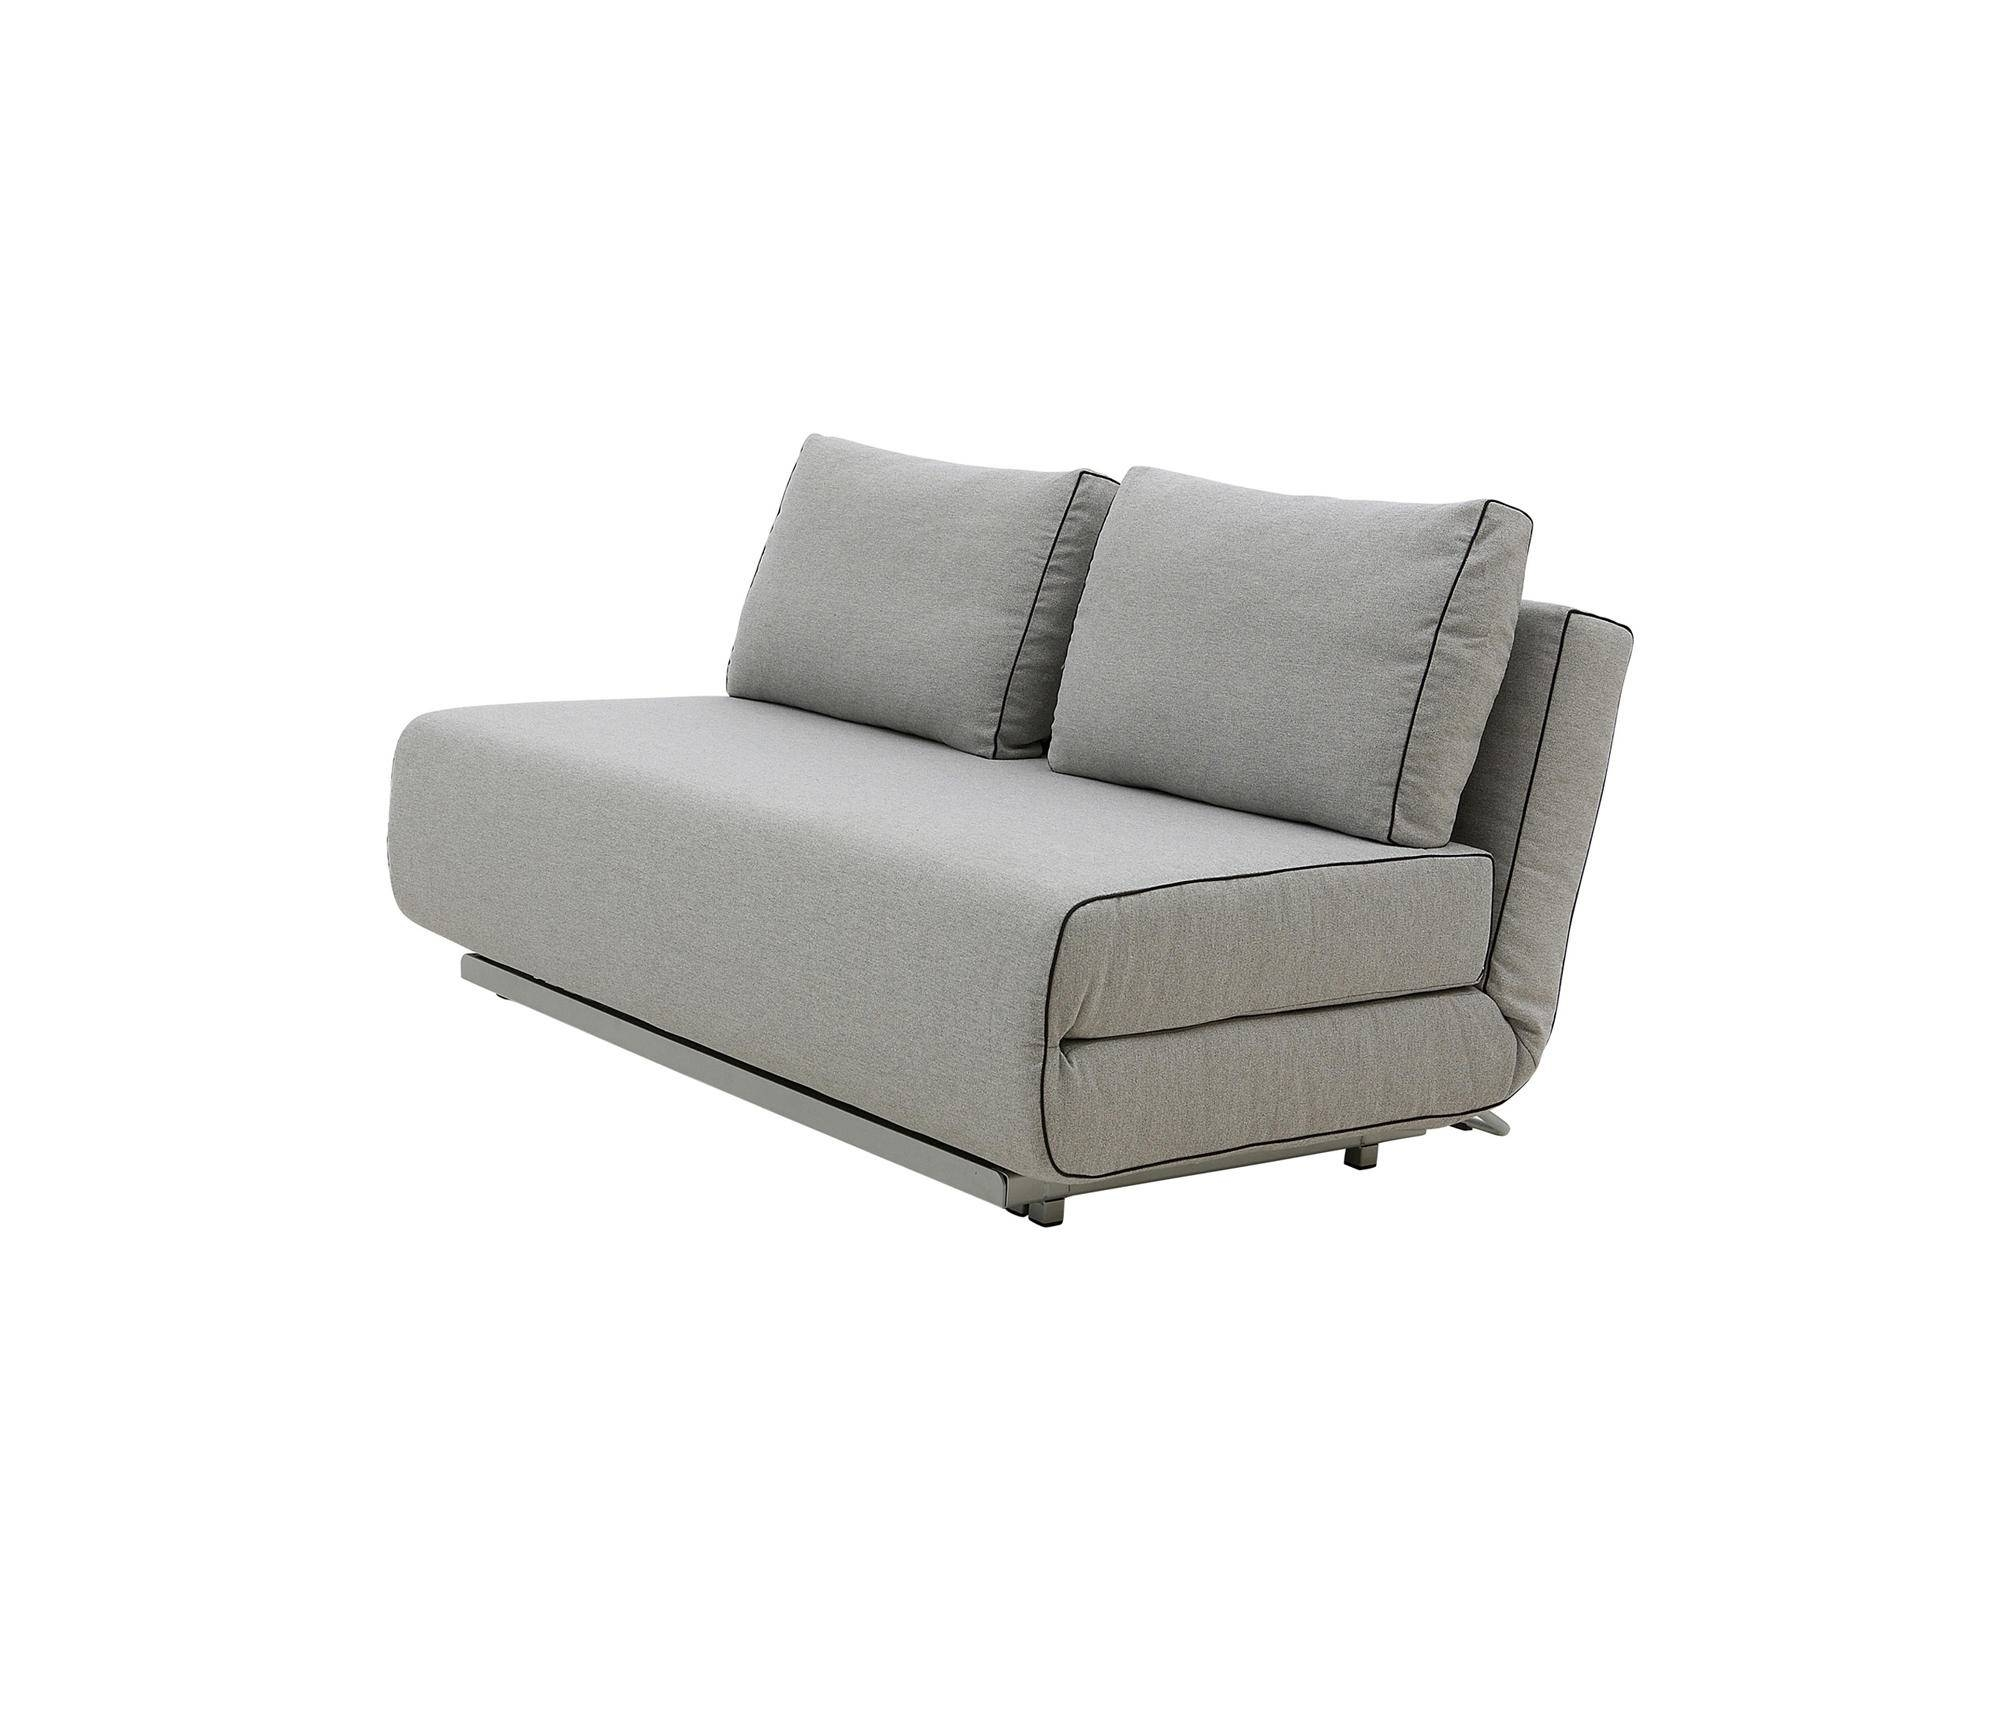 City Sofa – Sofa Beds From Softline A/s | Architonic Inside City Sofa Beds (View 4 of 30)